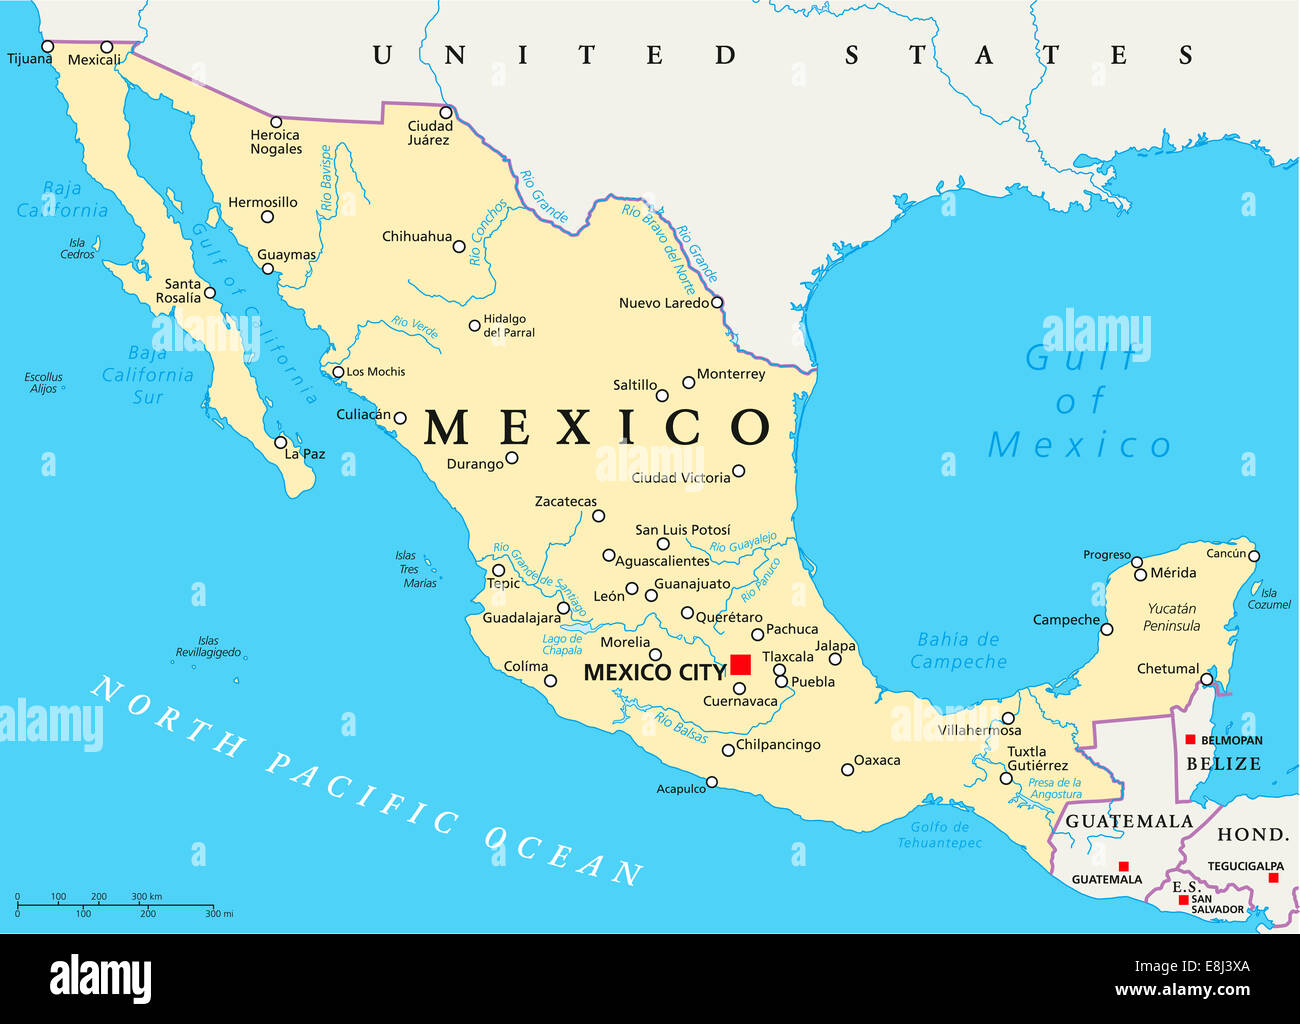 Map Of Mexico With Cities Mexico Political Map with capital Mexico City, national borders